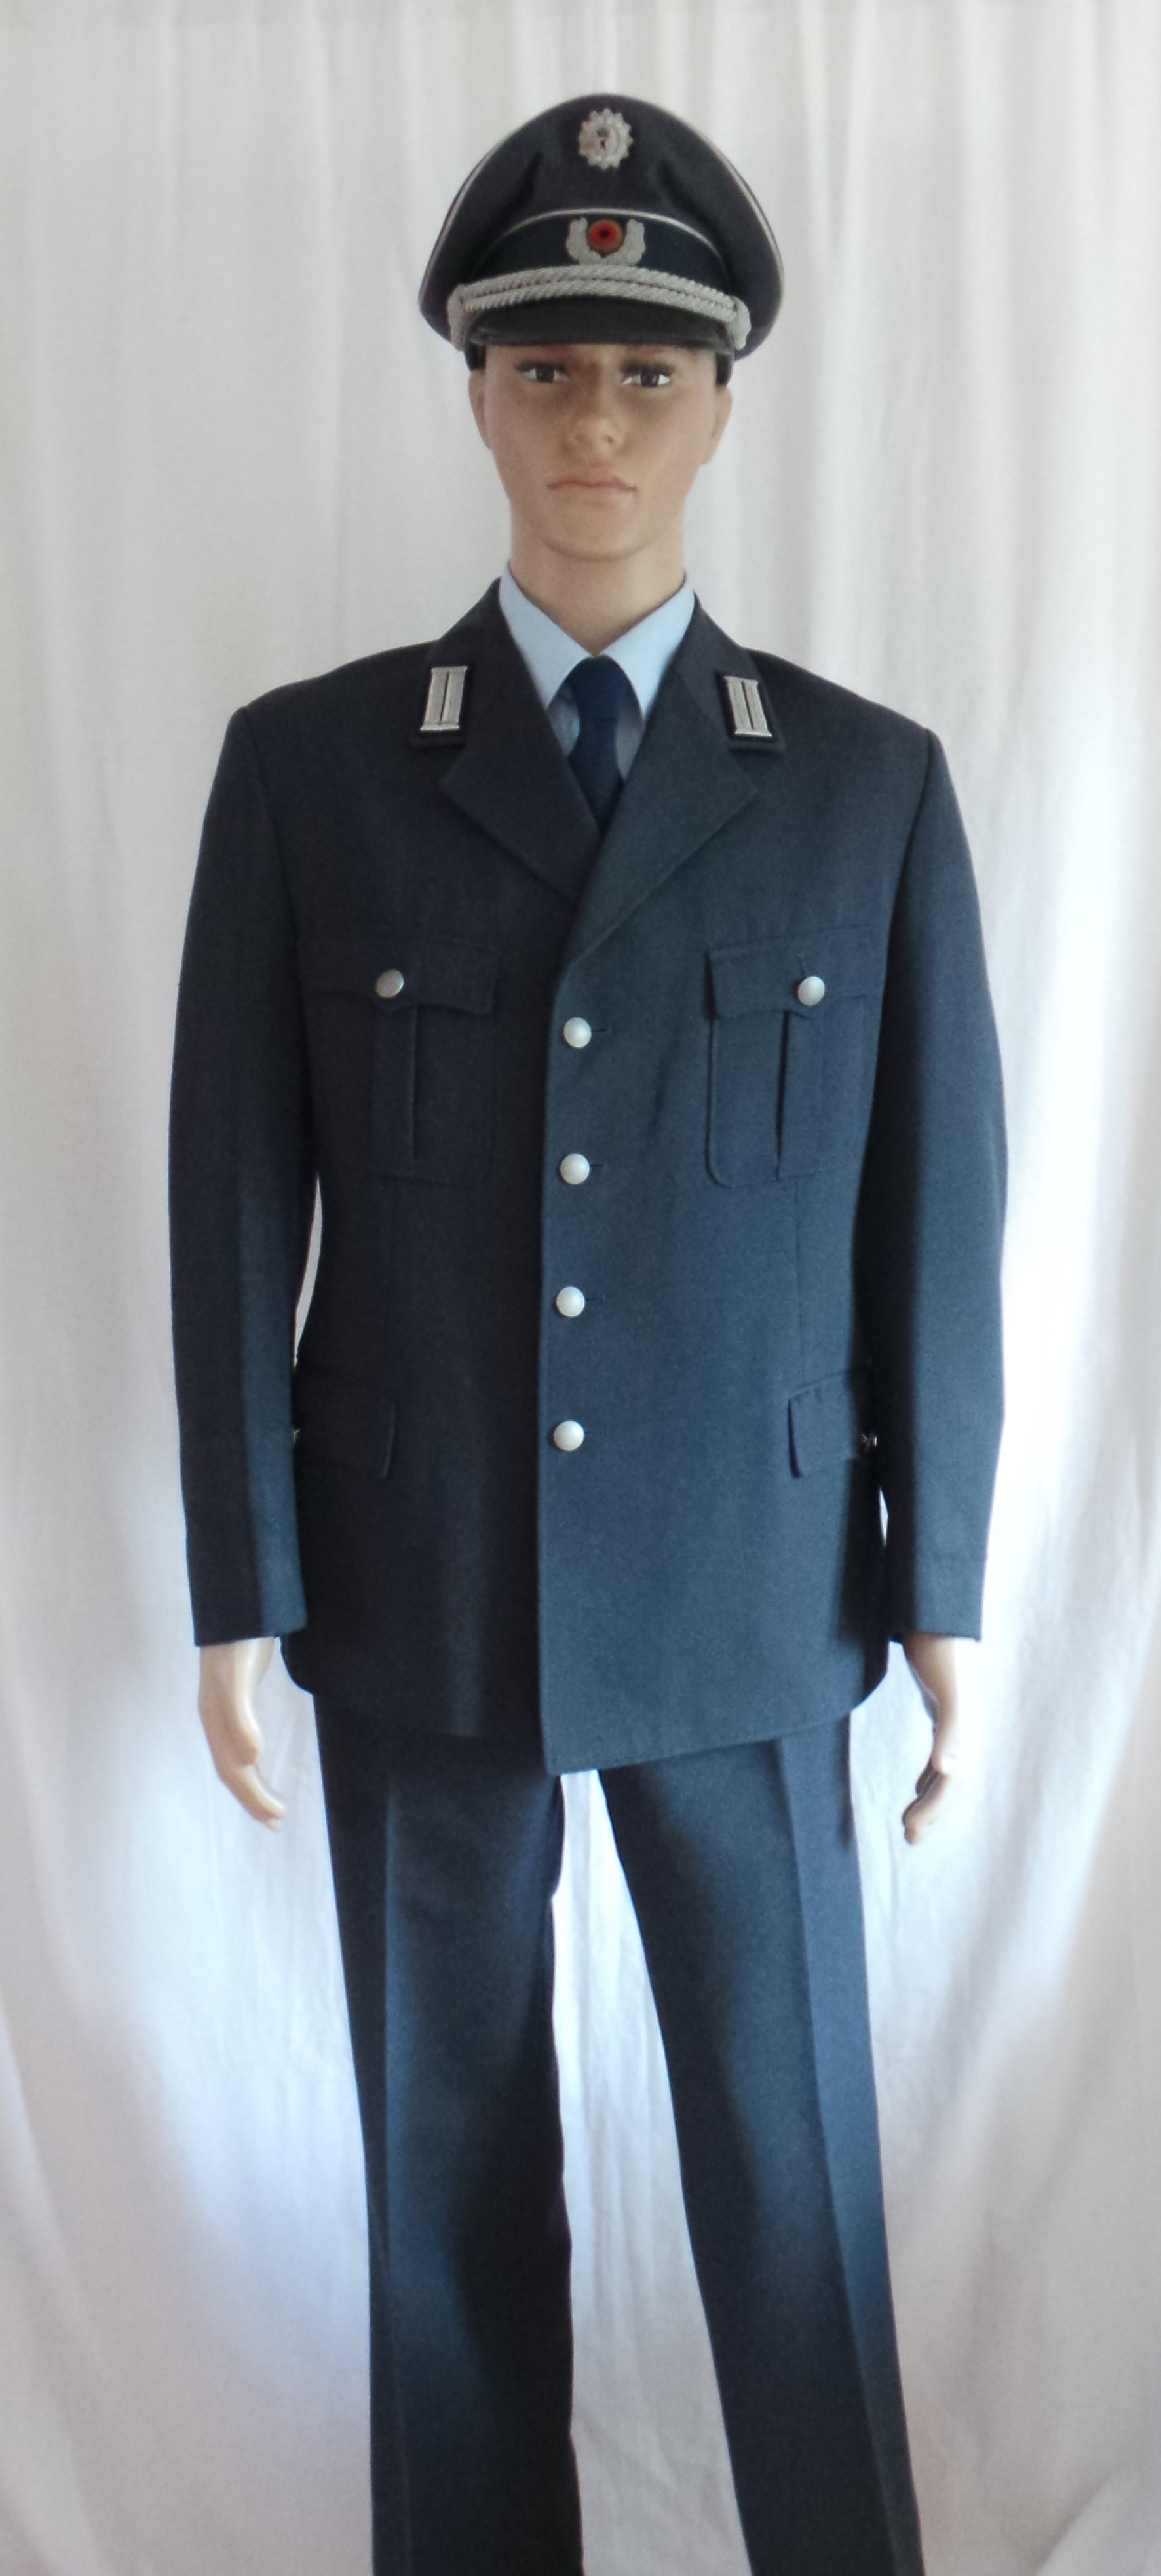 02 Schutzpolizei Service Dress